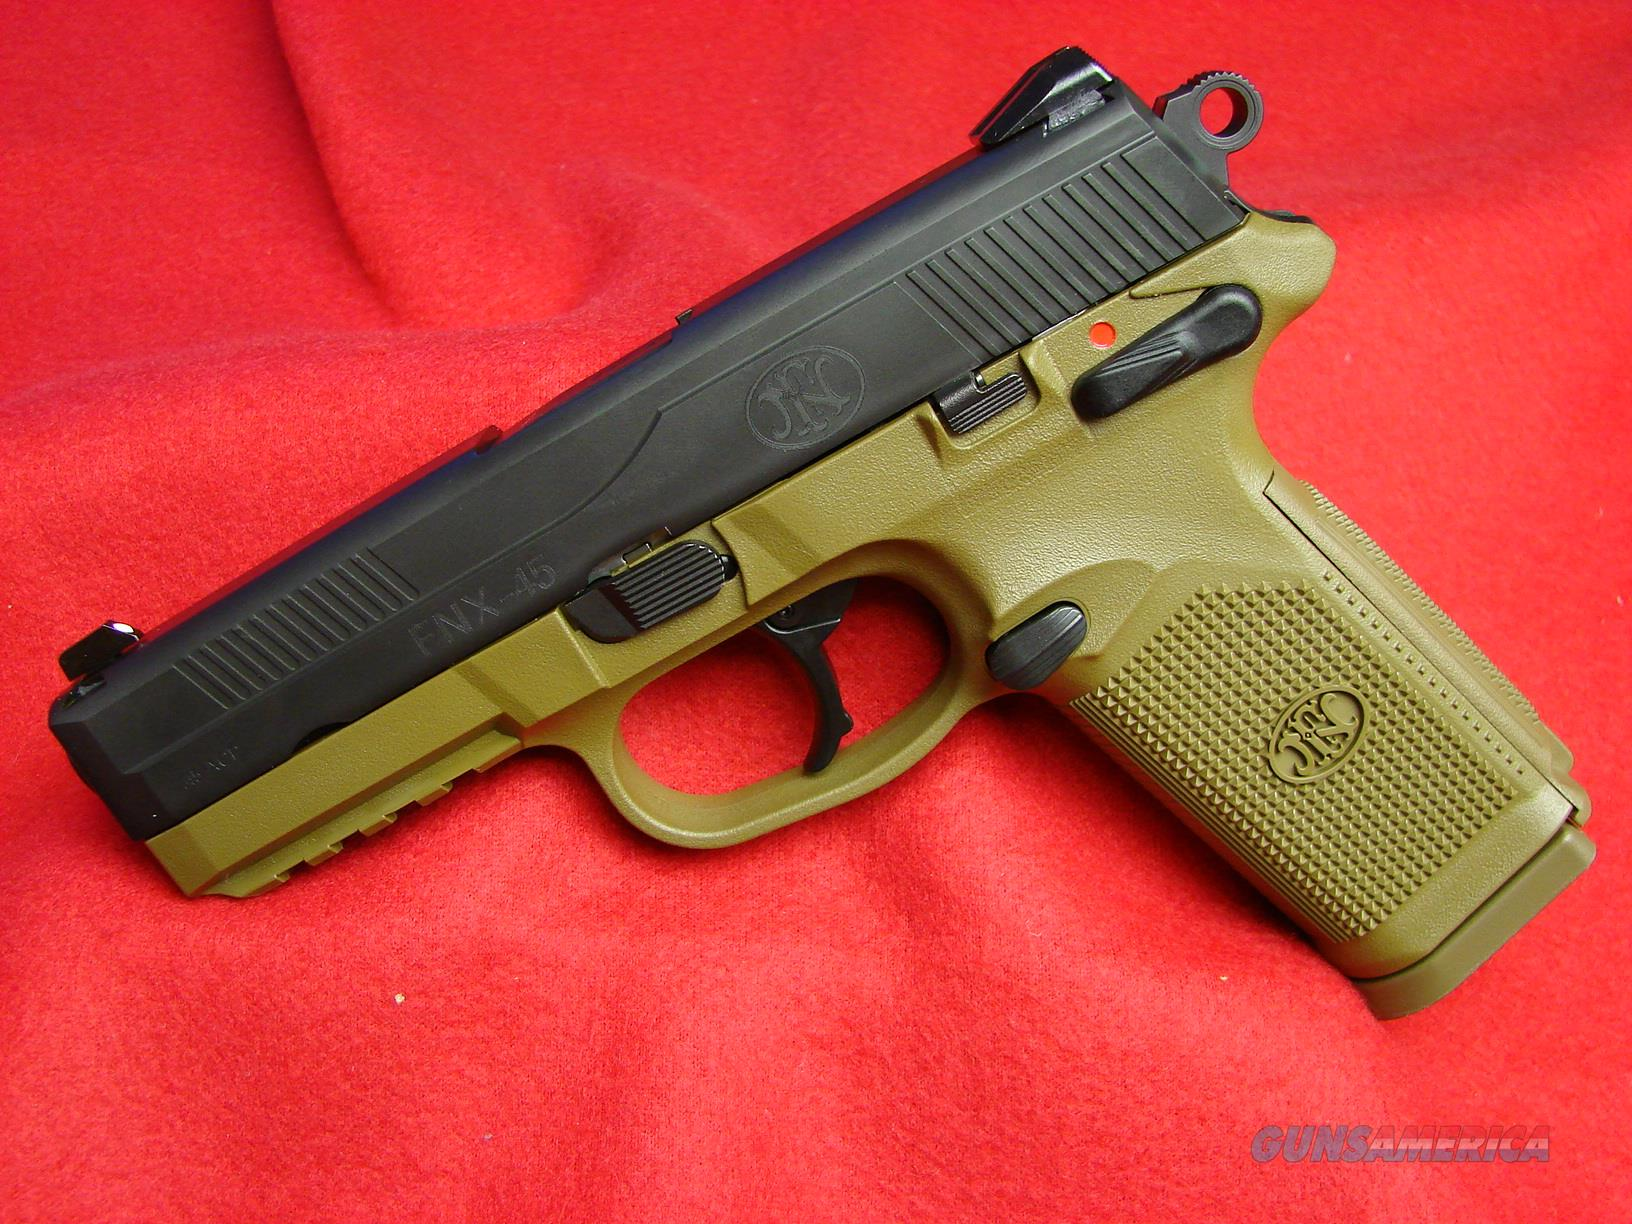 NIB - FNH - FNX 45acp in Dark Earth Frame with Blued Slide  Guns > Pistols > FNH - Fabrique Nationale (FN) Pistols > FNX